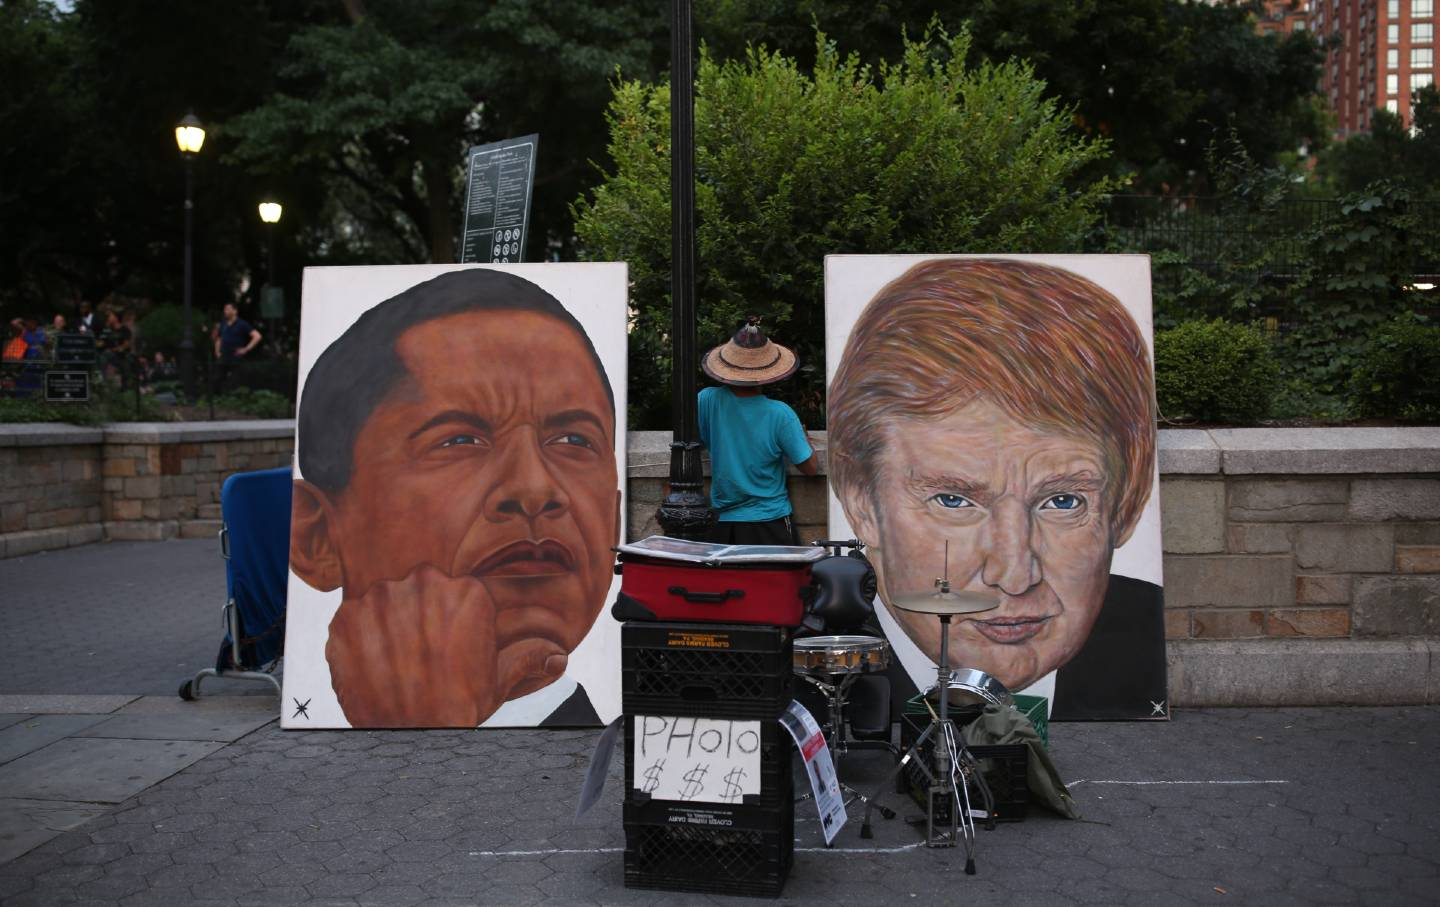 Paintings of Donald Trump and Barack Obama's faces are displayed outside a park in New York CIty